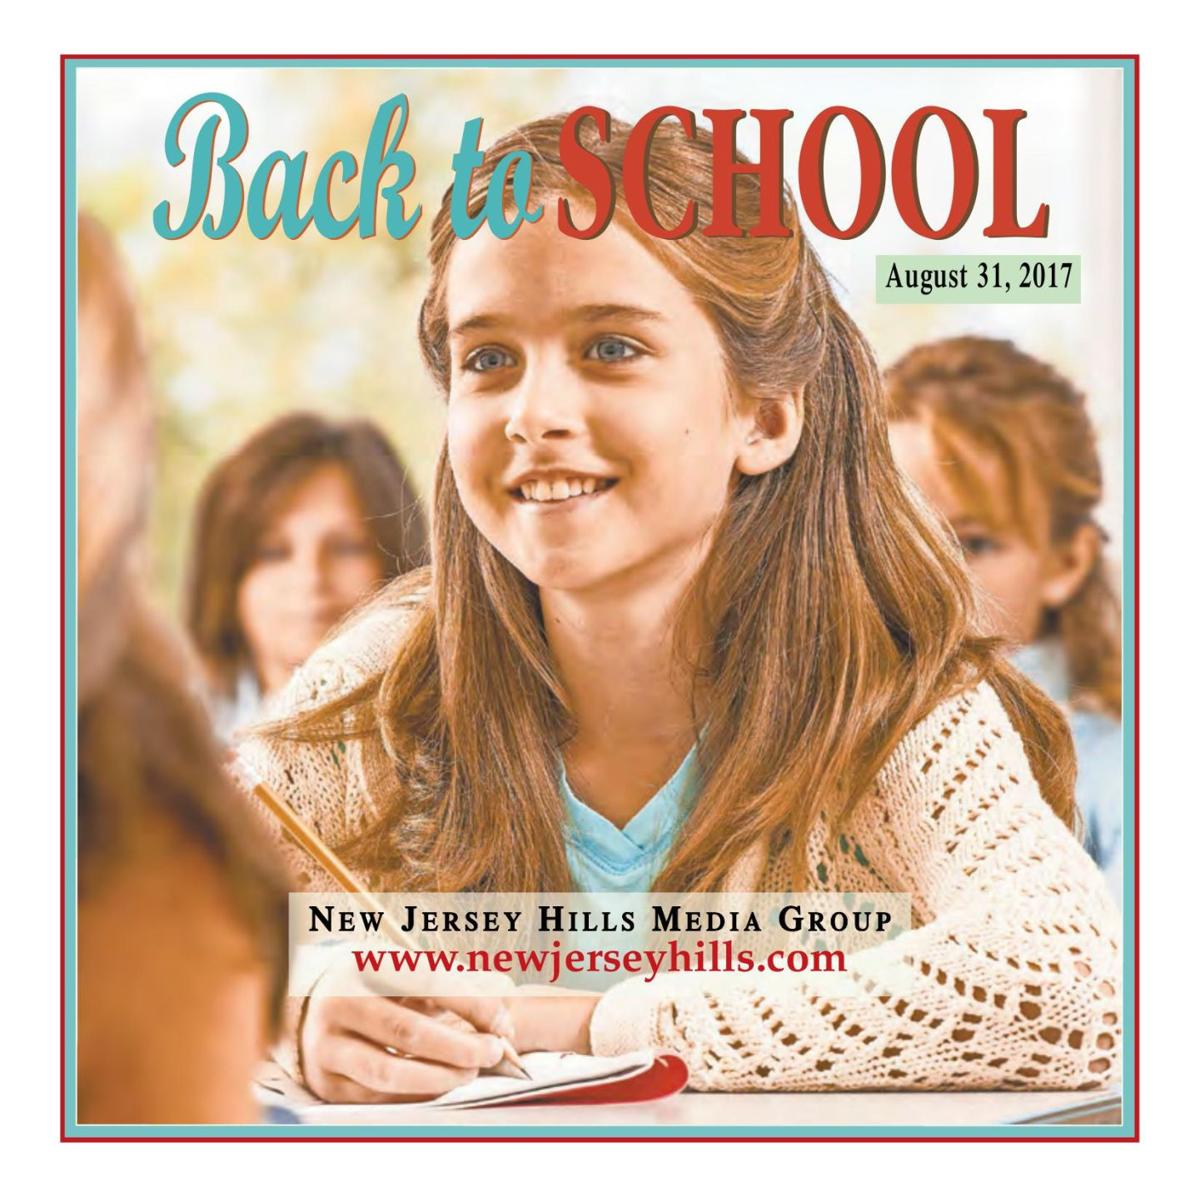 Back To School - August 31,2017